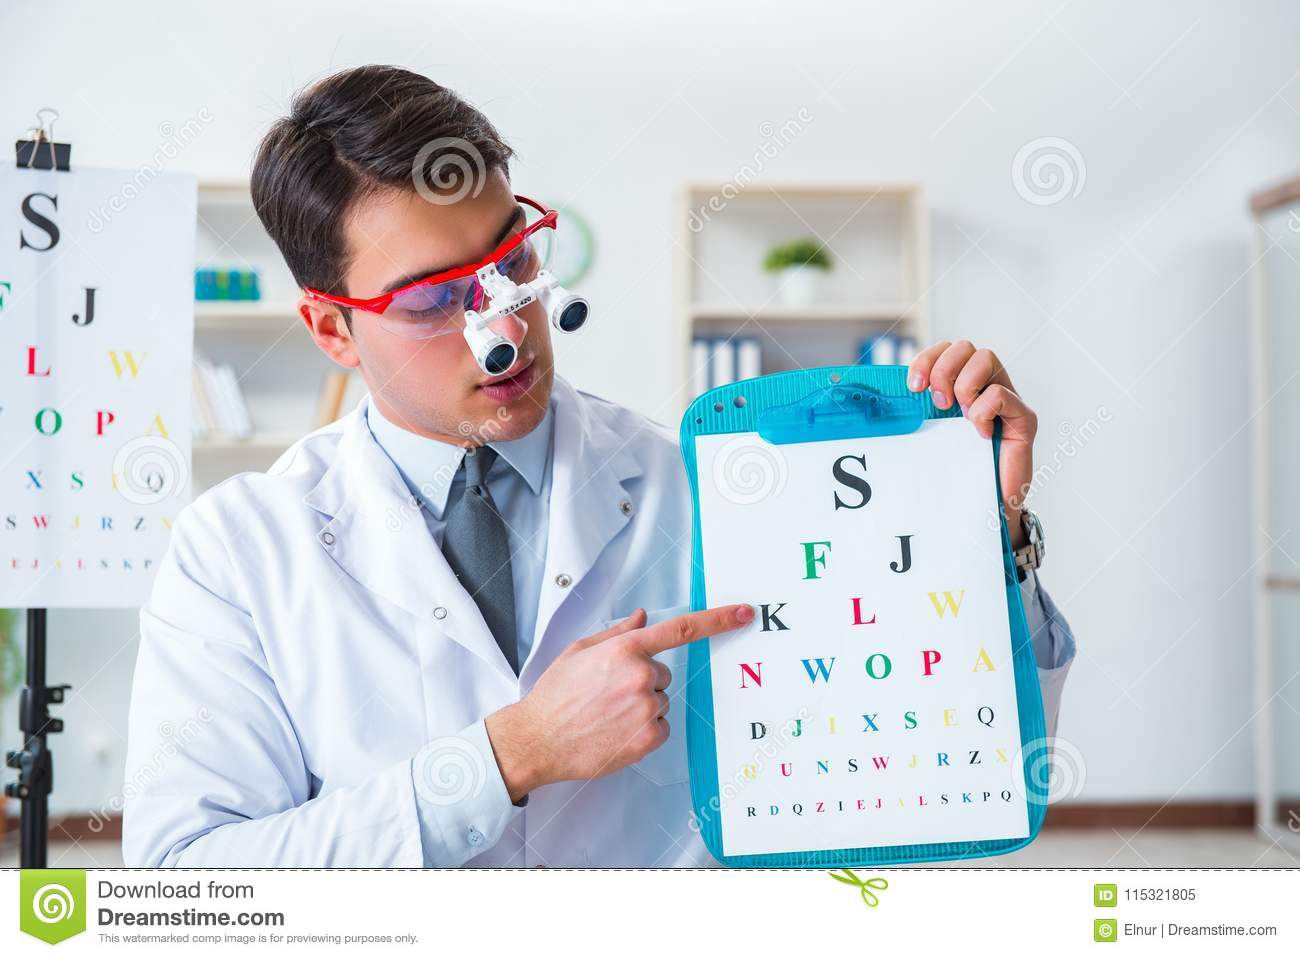 The Eye Doctor In Eyecare Concept In Hospital Stock Image - Image of  health, eyes: 115321805